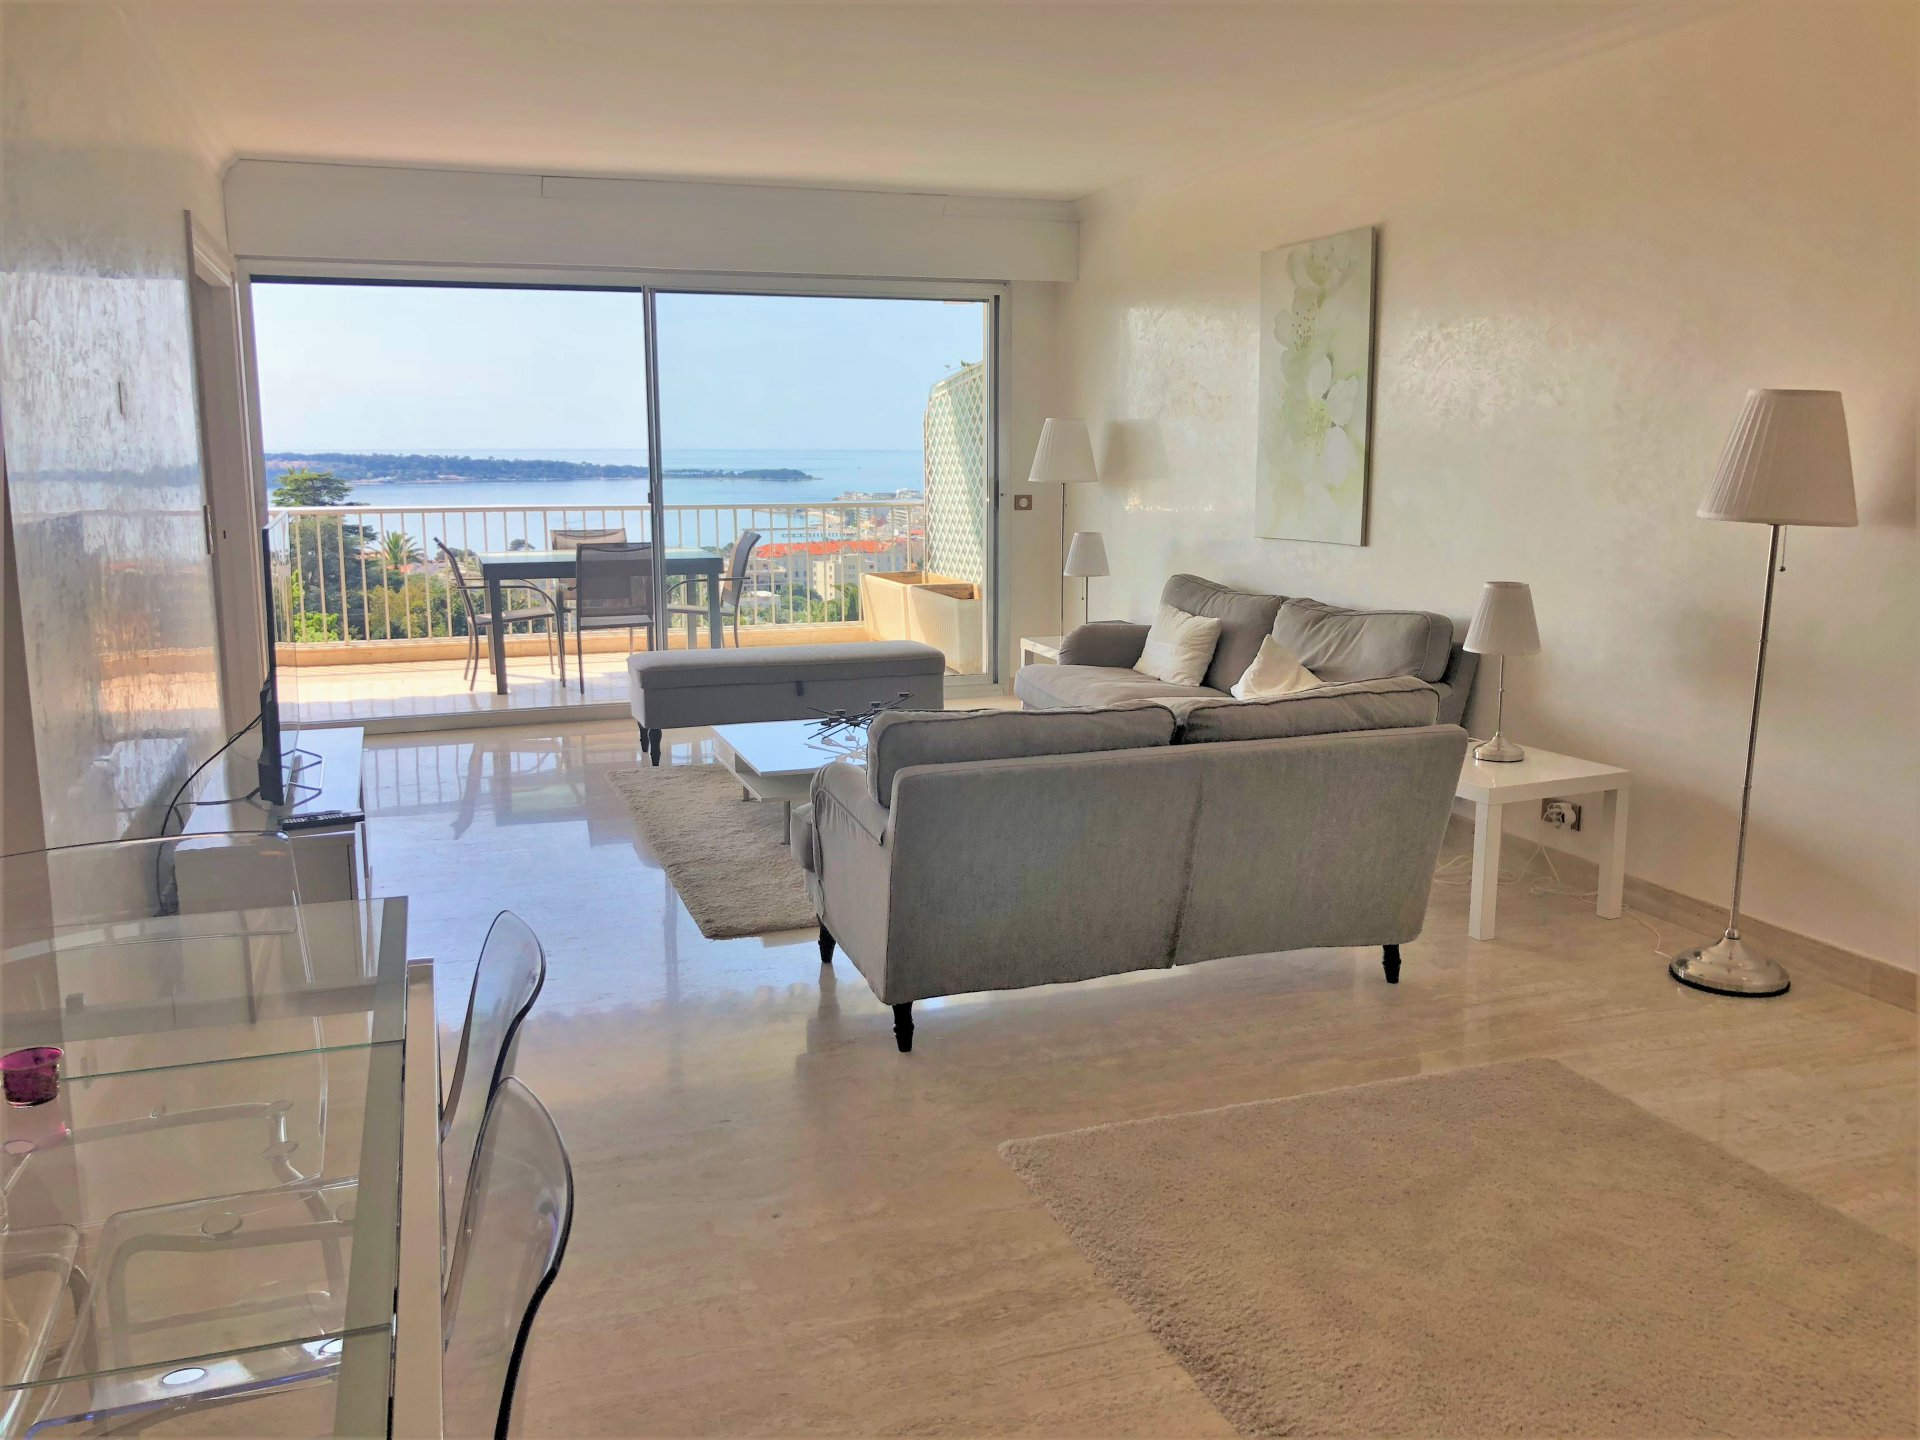 CALIFORNIA 4P 123 M² + 20M² Ter.PANORAMIC SEA VIEW